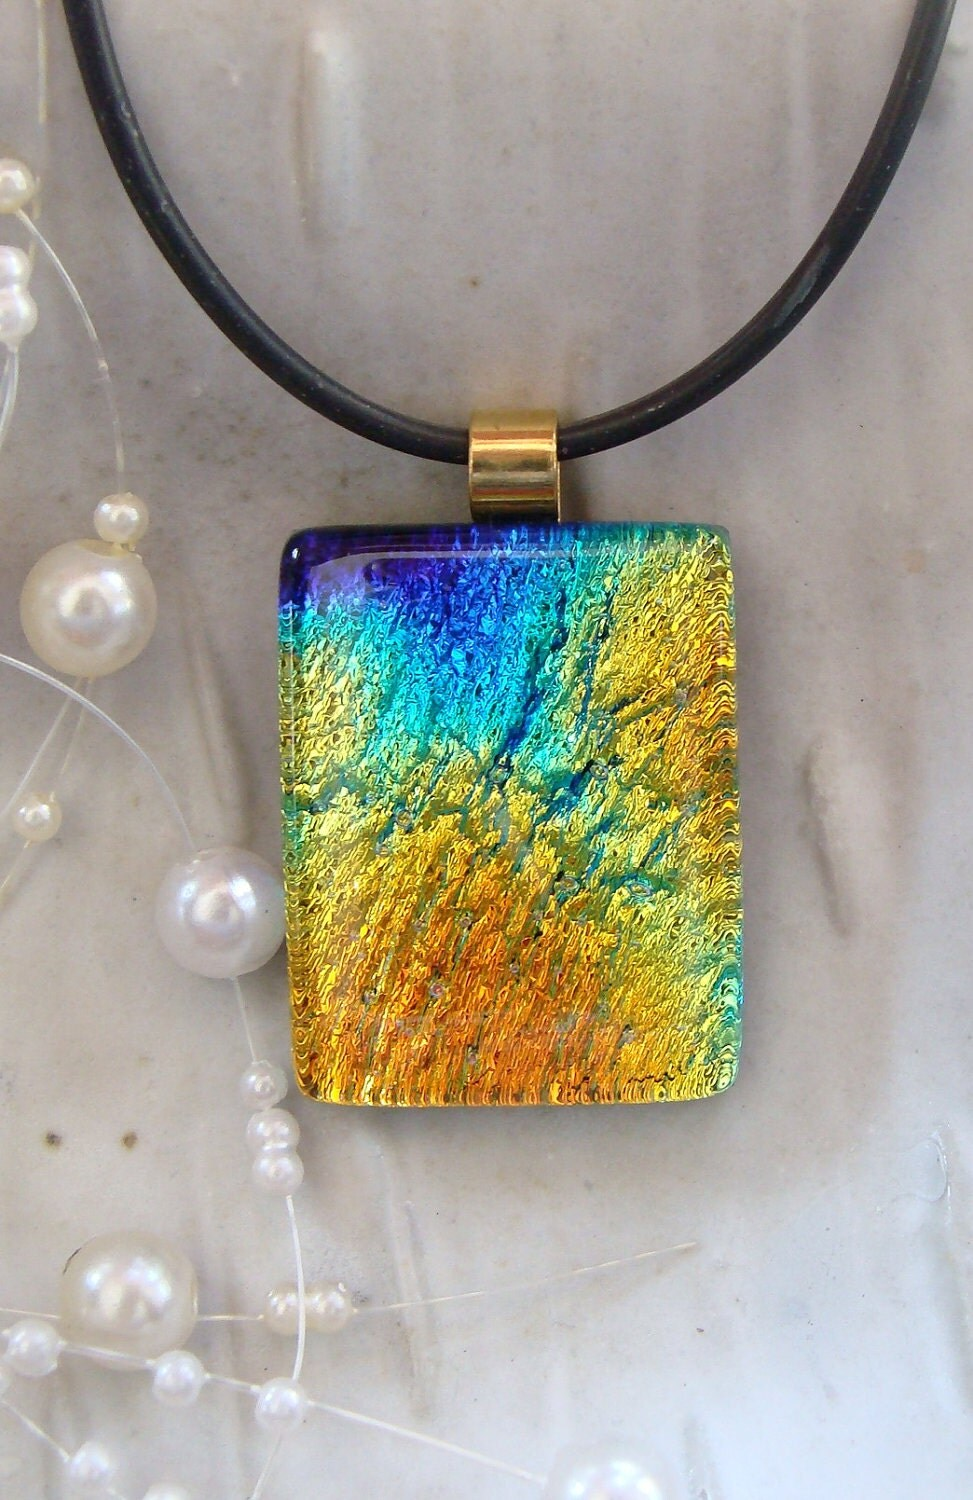 Dichroic Fused Glass Pendant, Yellow, Gold, Cobalt Blue, Aqua, Necklace Included - myfusedglass